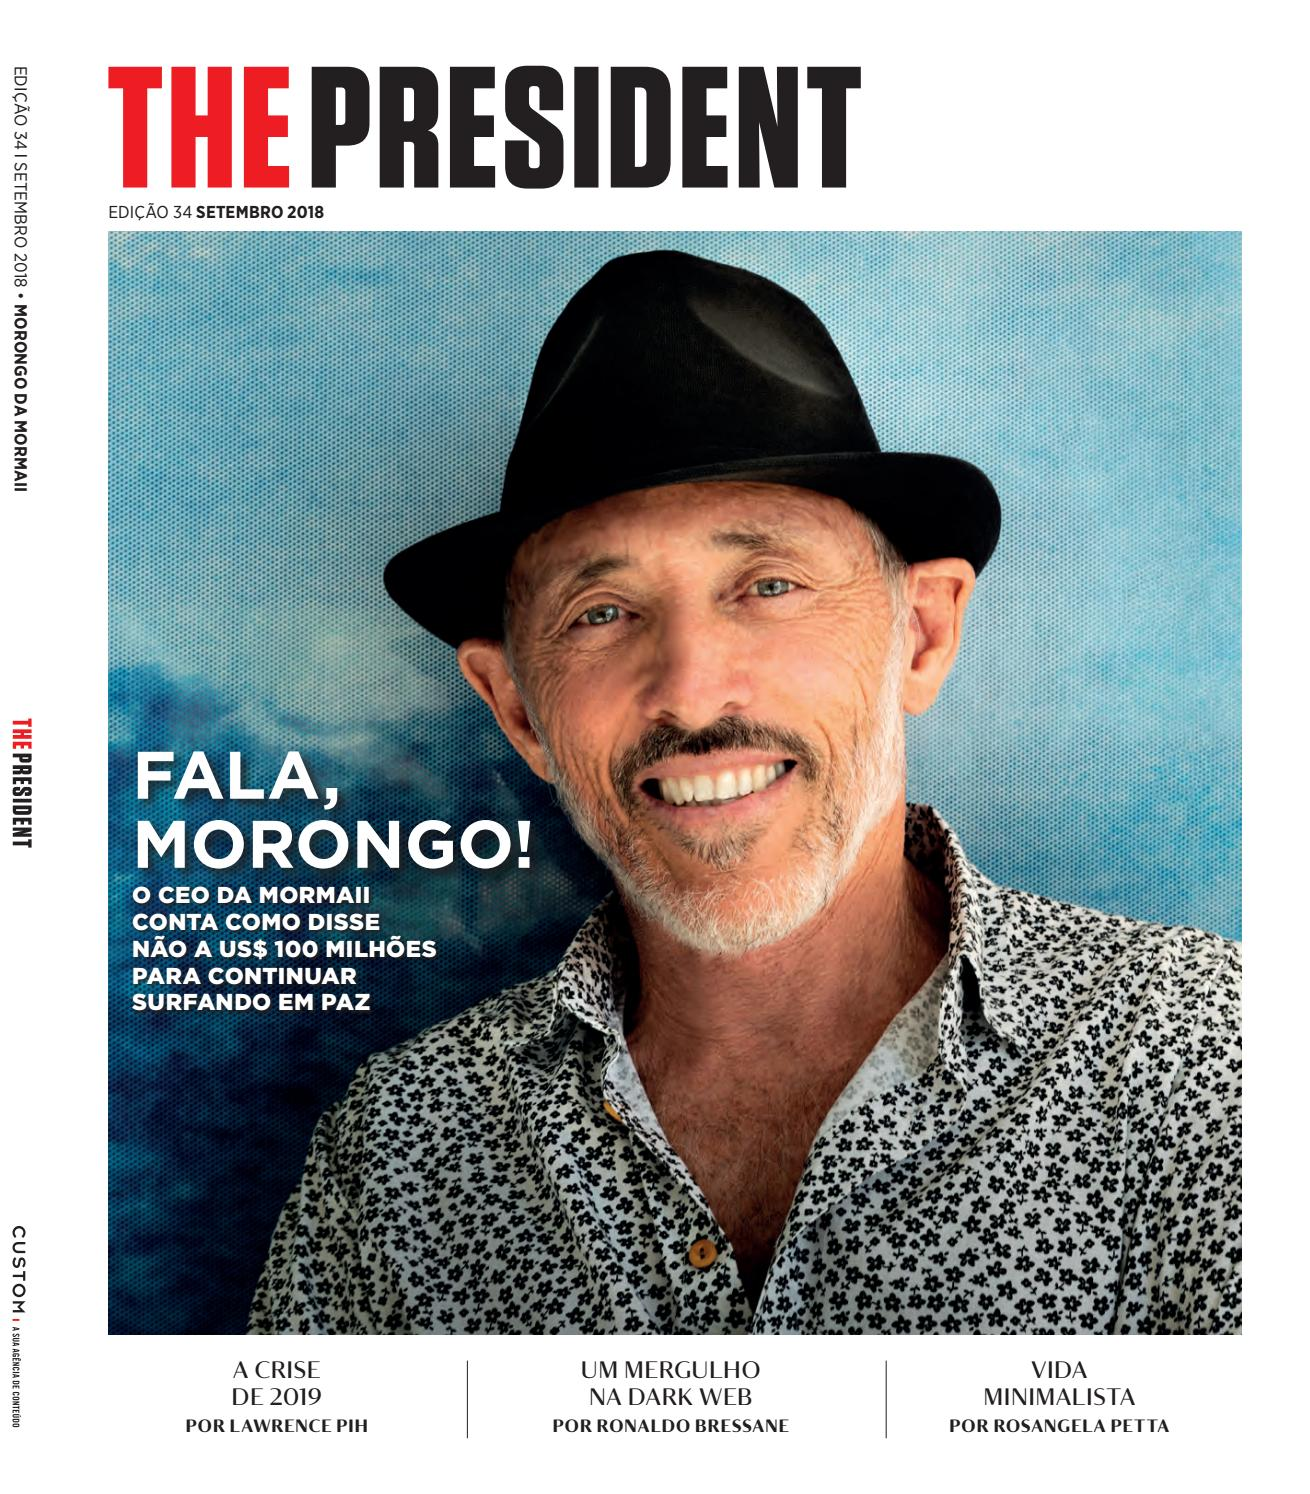 329c1e01f5227 The President  34 by The President - issuu